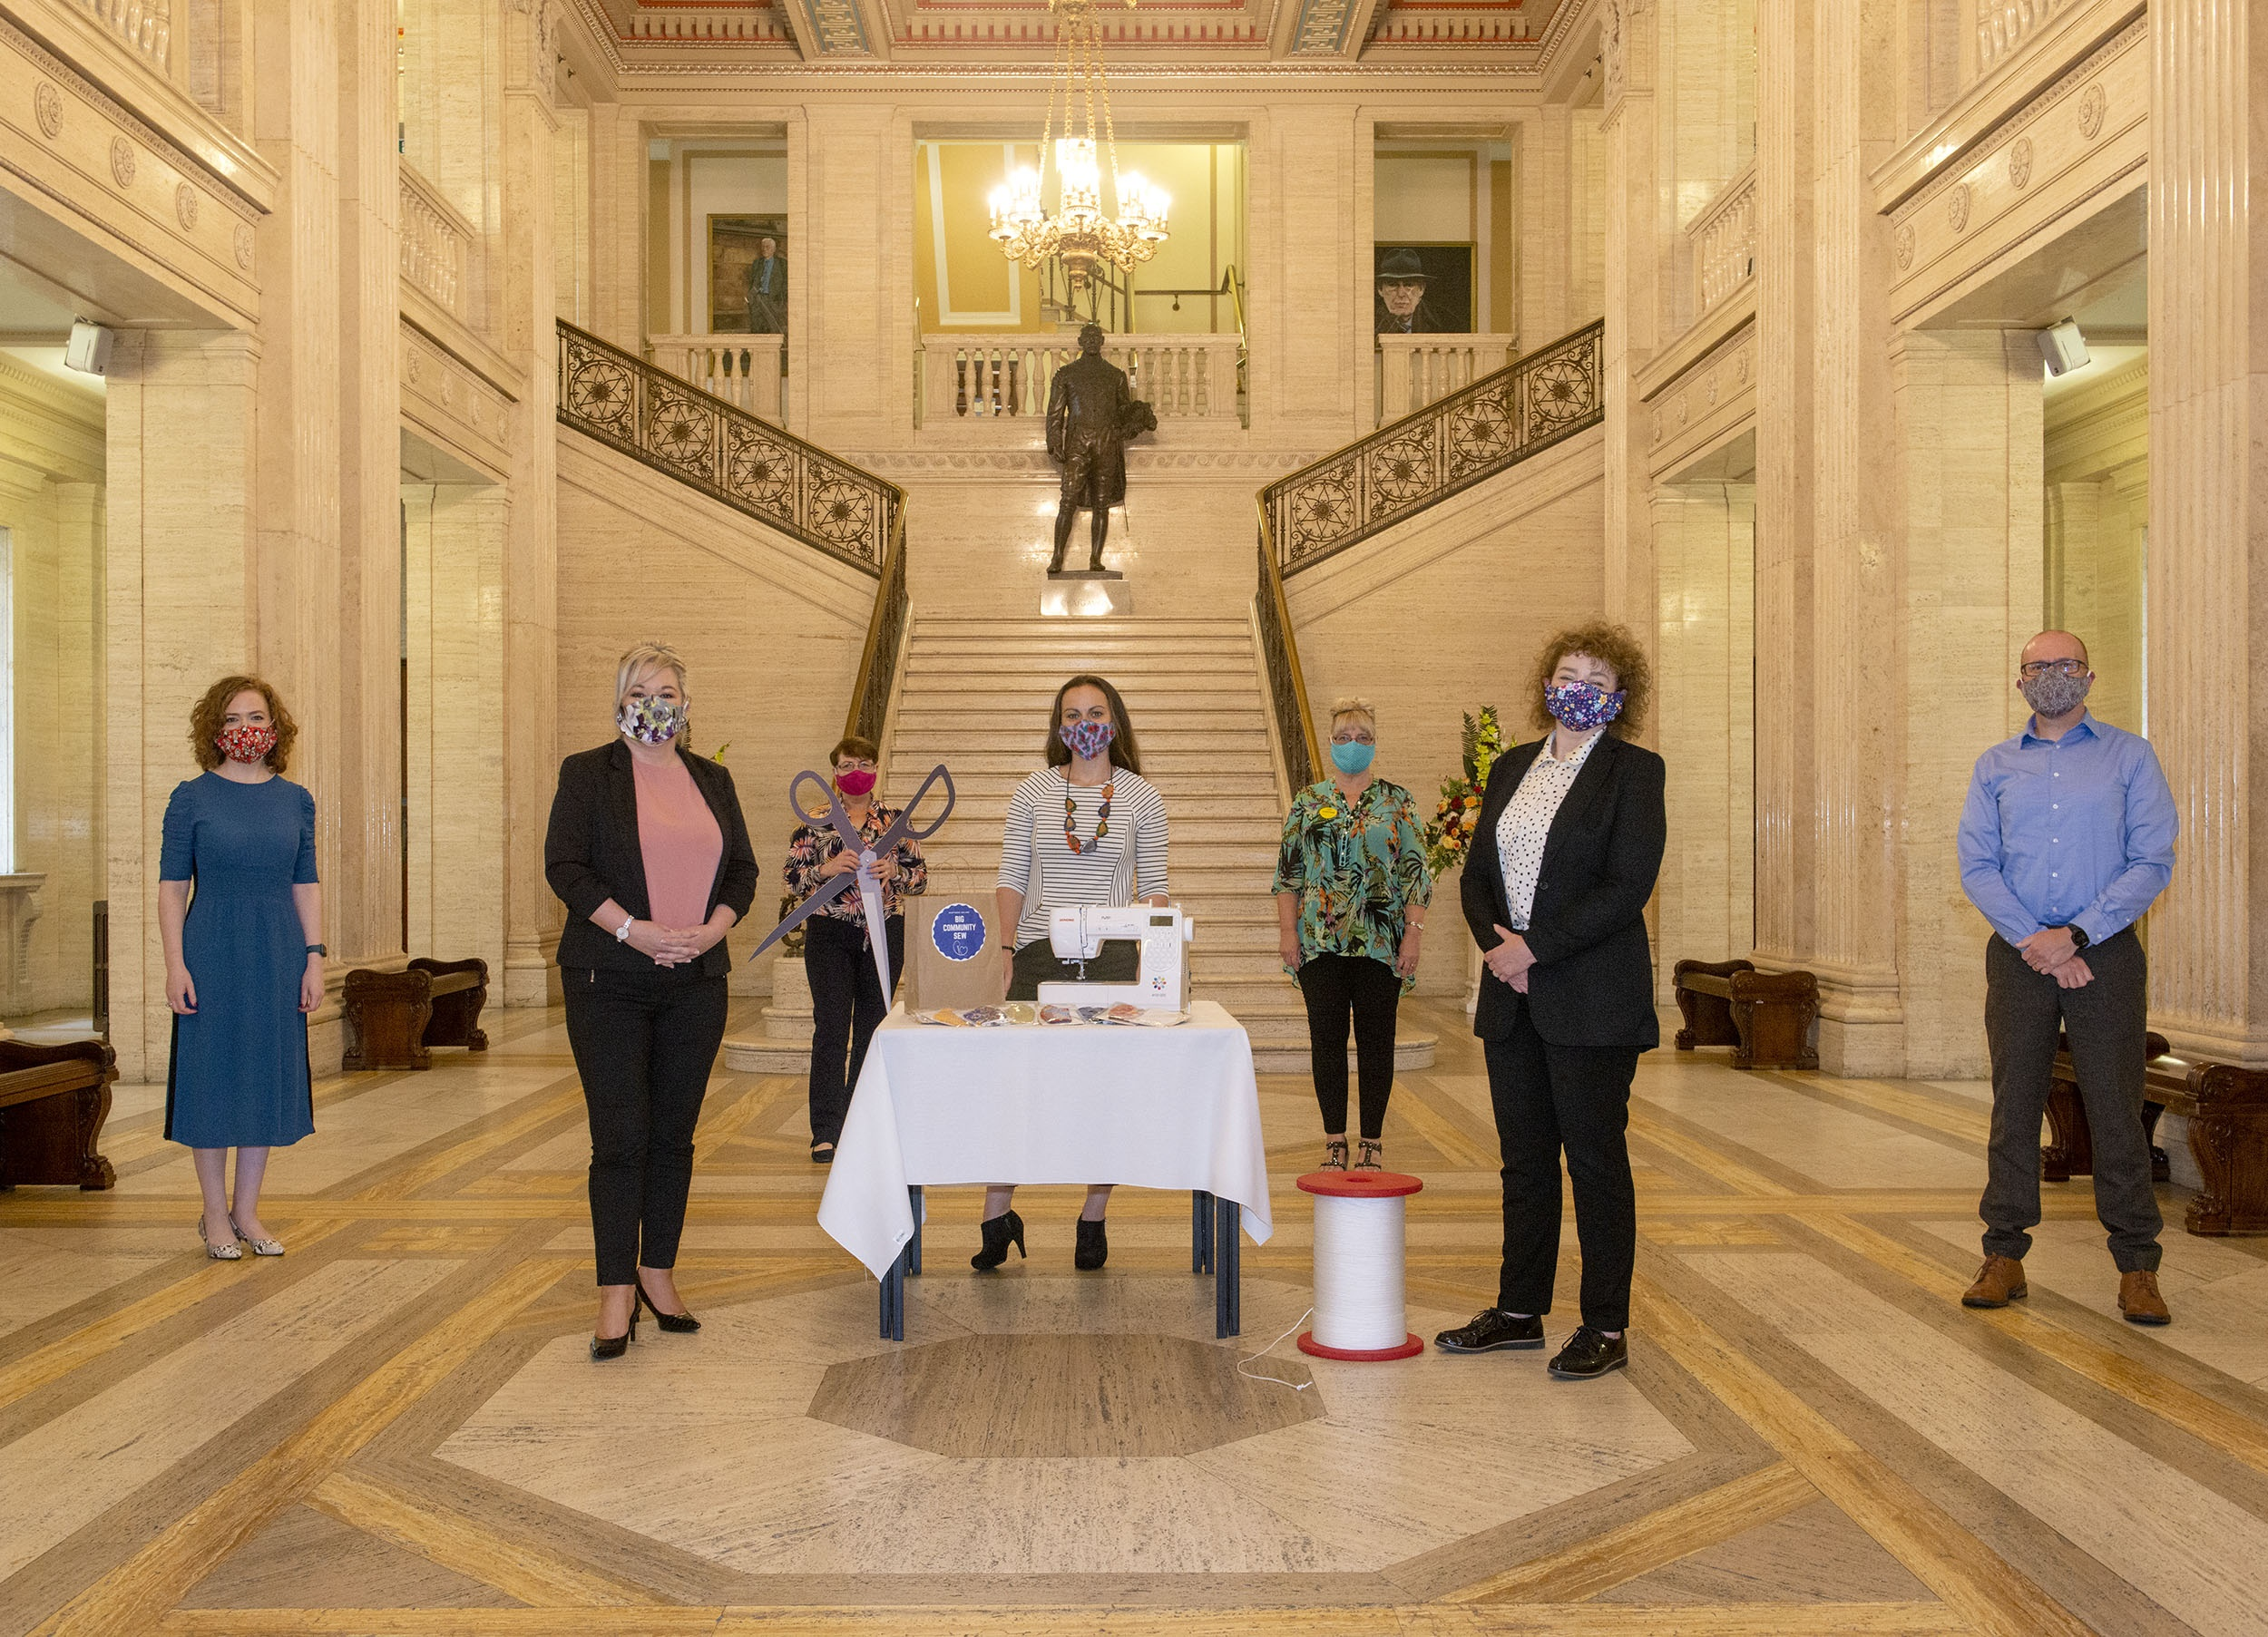 NI Communities Minister Masks, Wear One For Everyone - Newry COVID-19